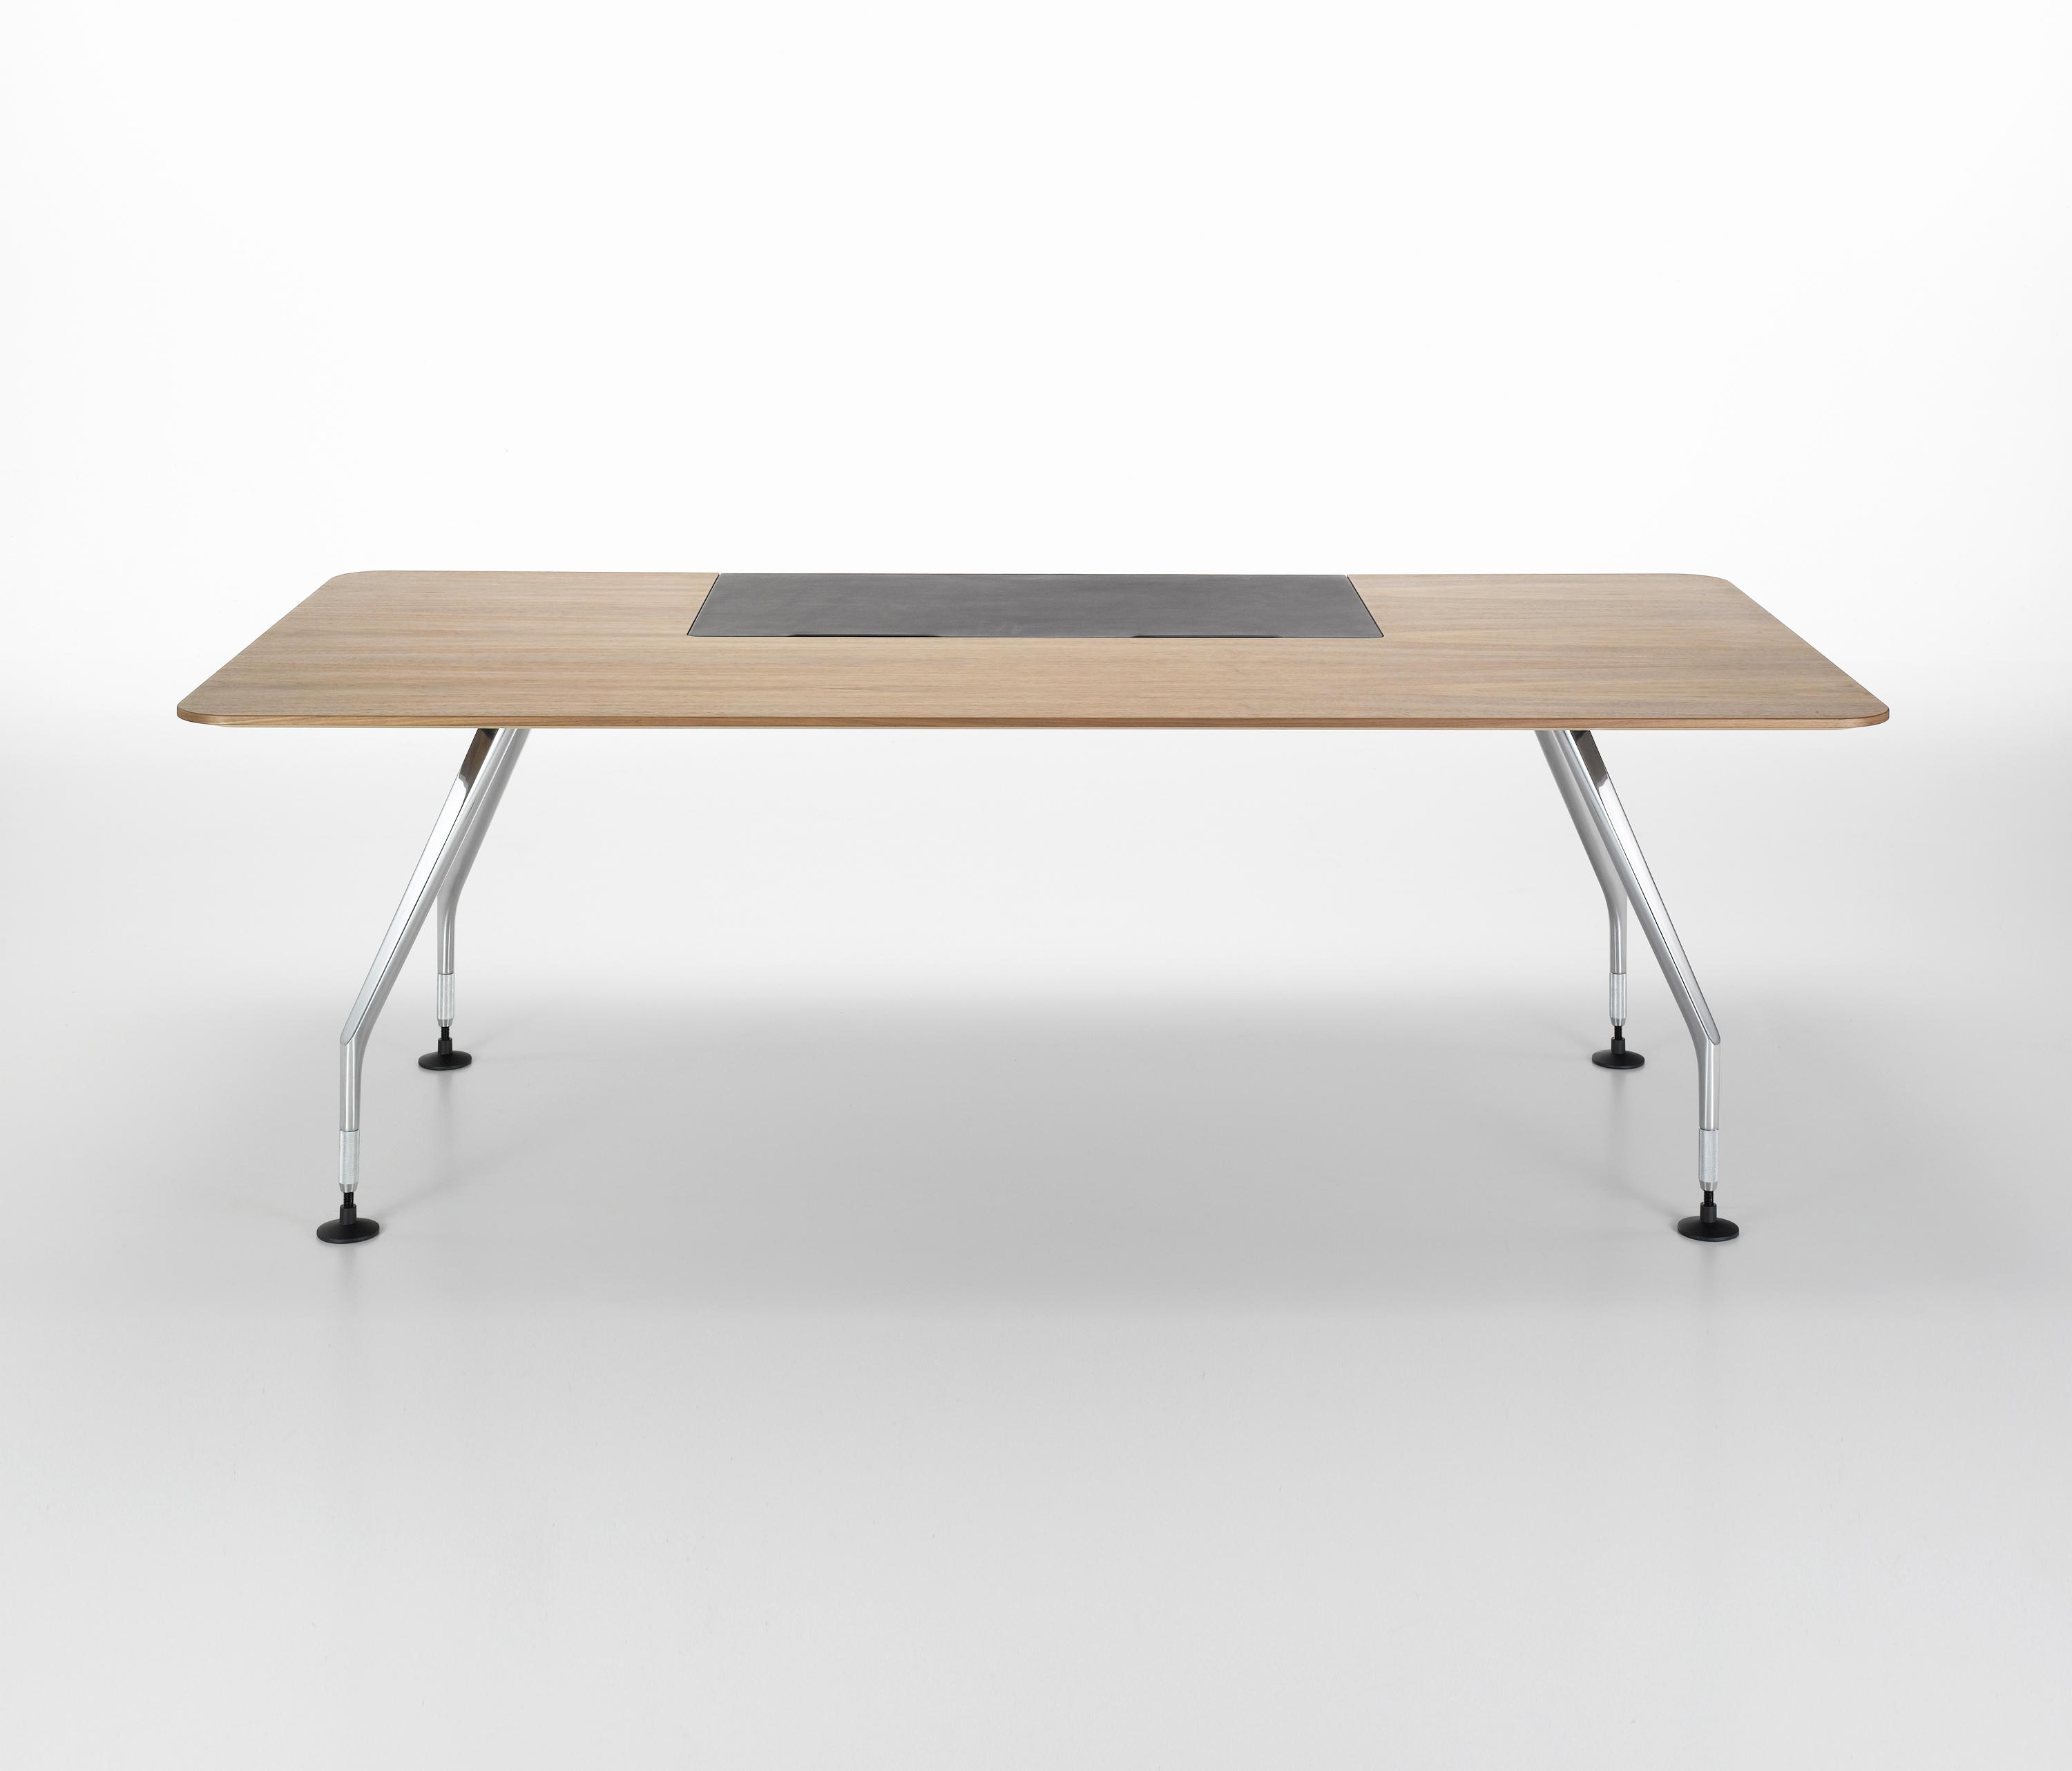 ad hoc executive table individual desks from vitra architonic. Black Bedroom Furniture Sets. Home Design Ideas